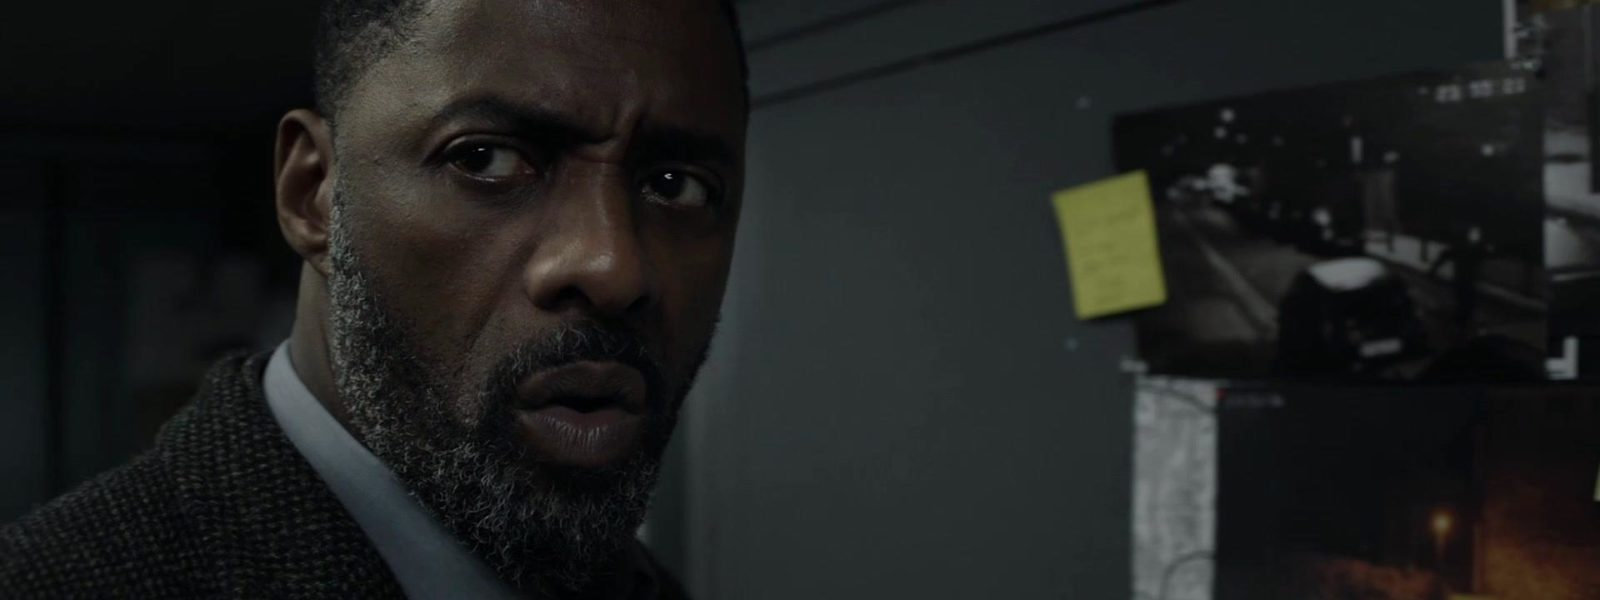 Luther_TRAILER_S05_November_2018_Coming_2019_YouTubePreset_10_1920x1080_1383160387536